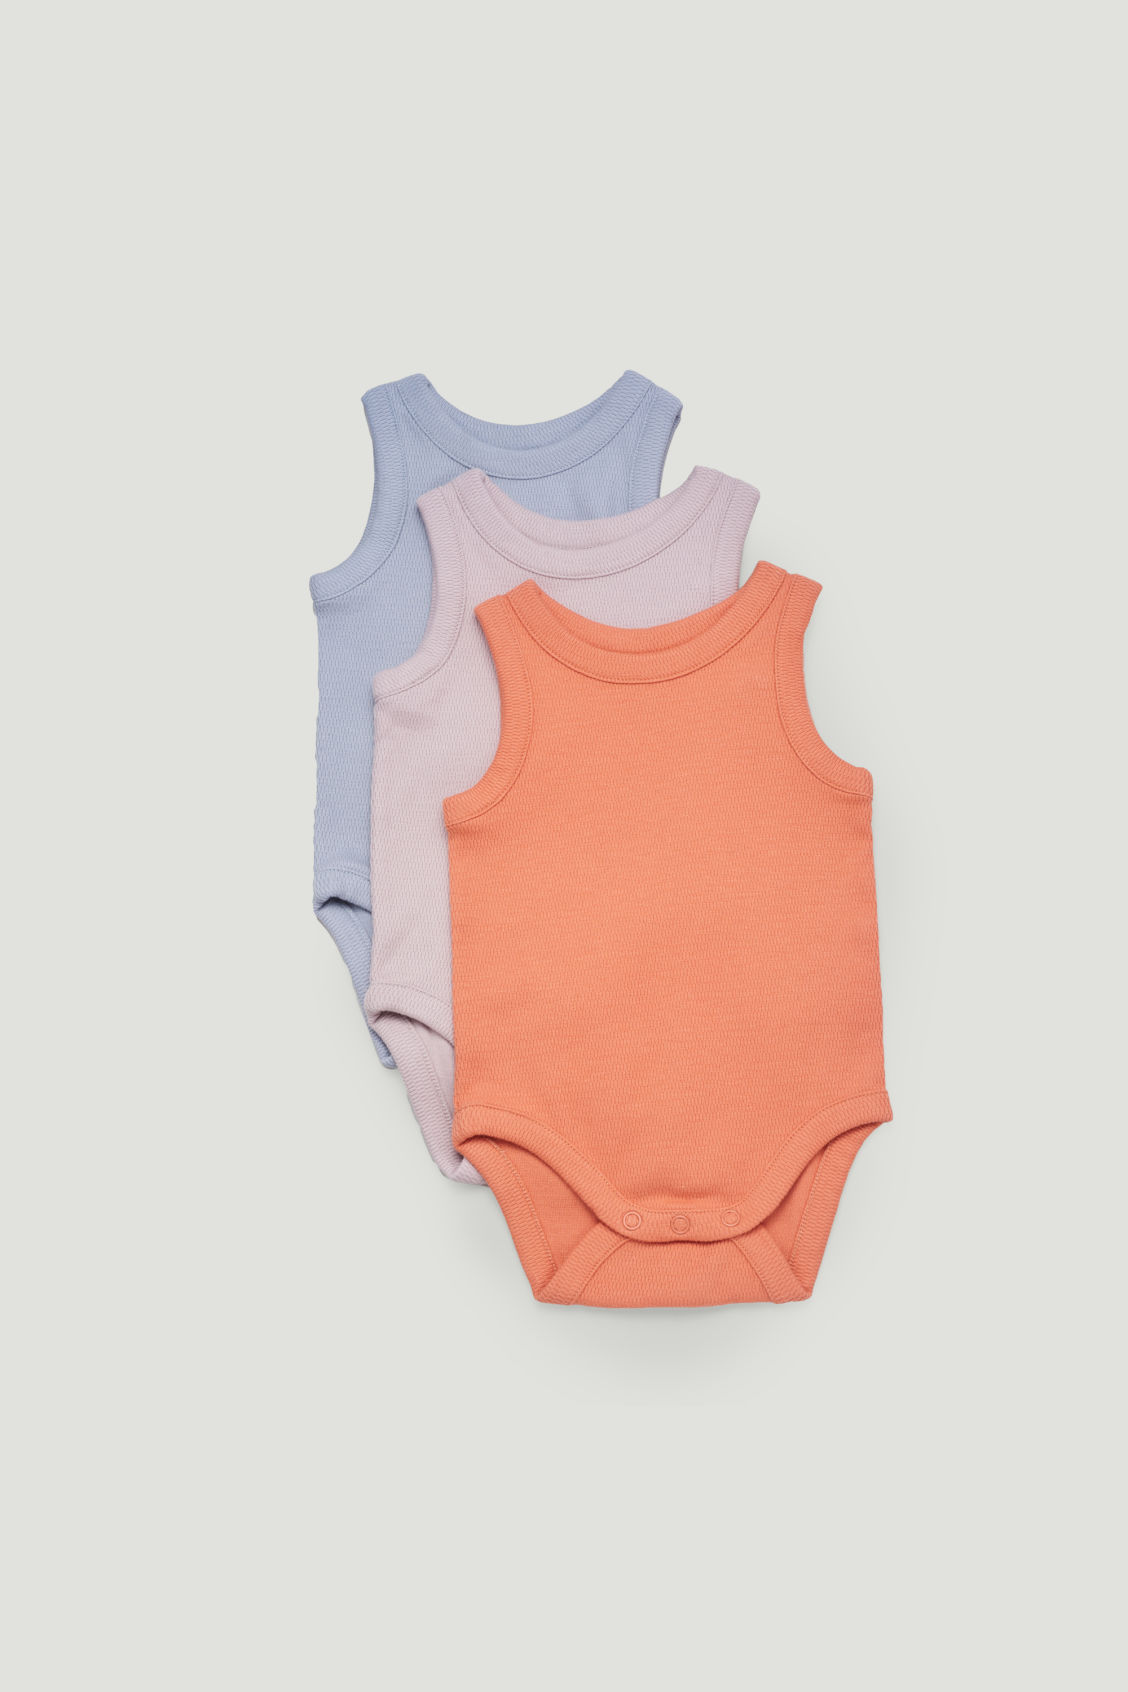 Cos Kids' 3-pack Organic Cotton Babygrows In Red